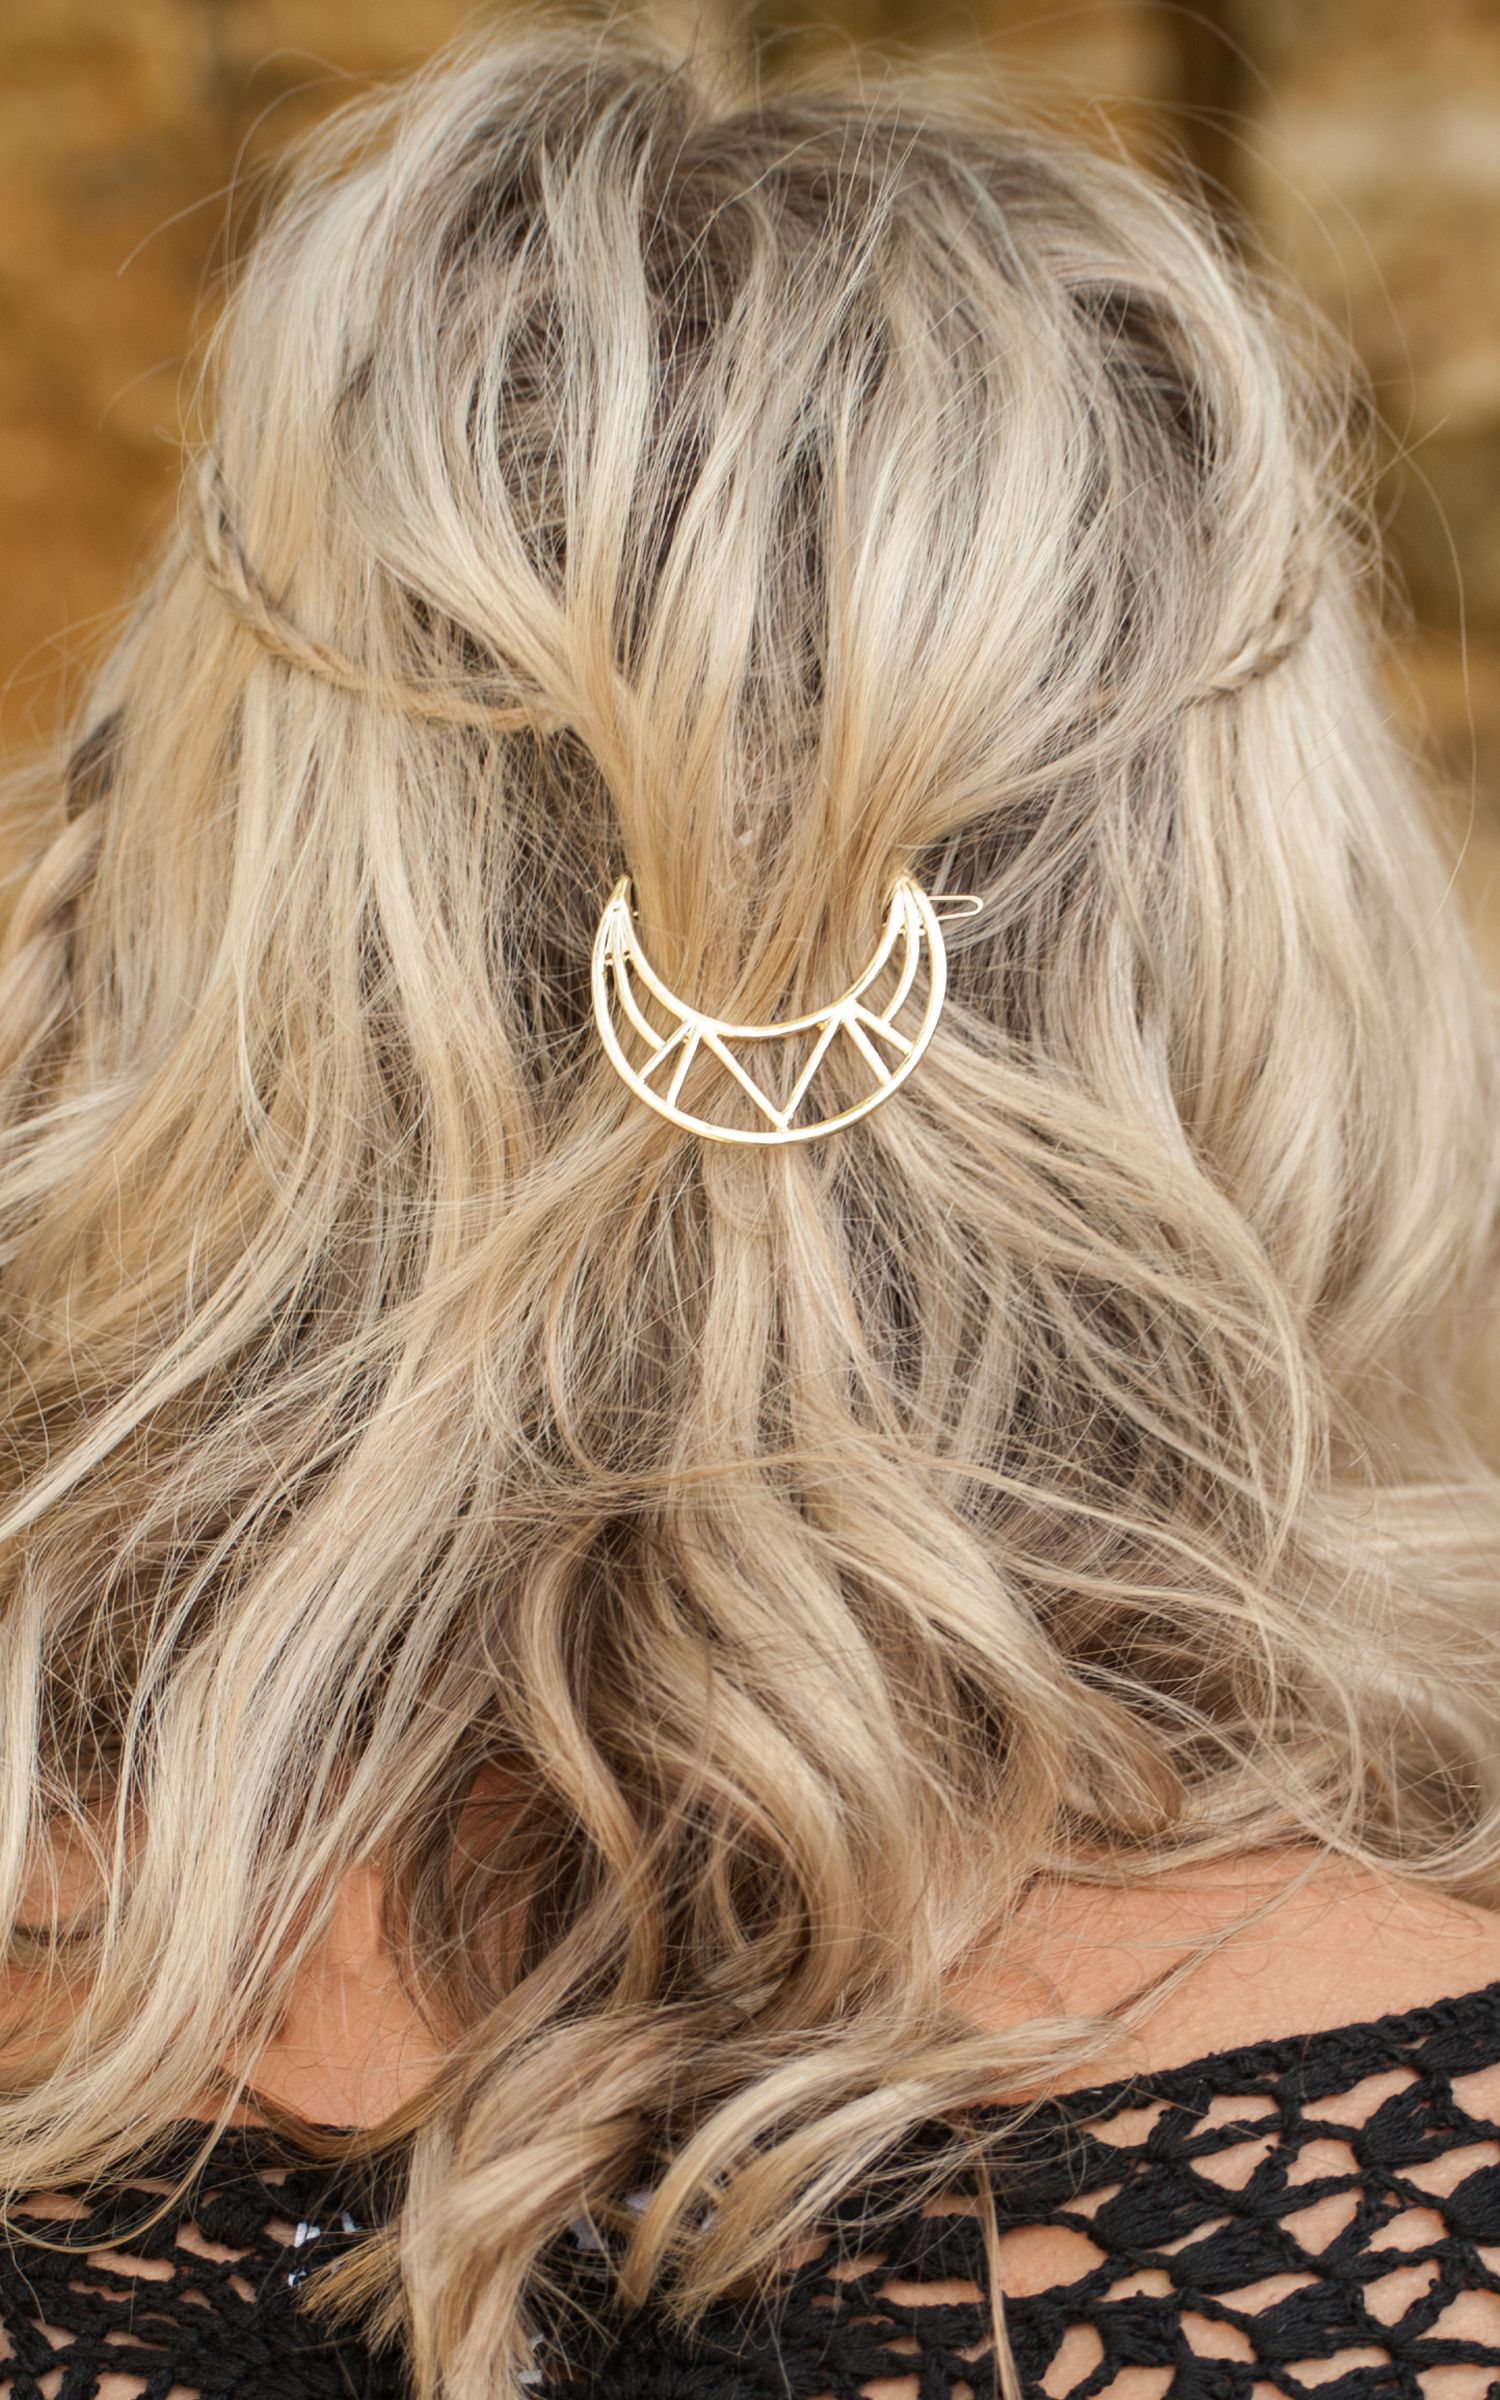 Luna Crescent Moon Hair Clip | silver in